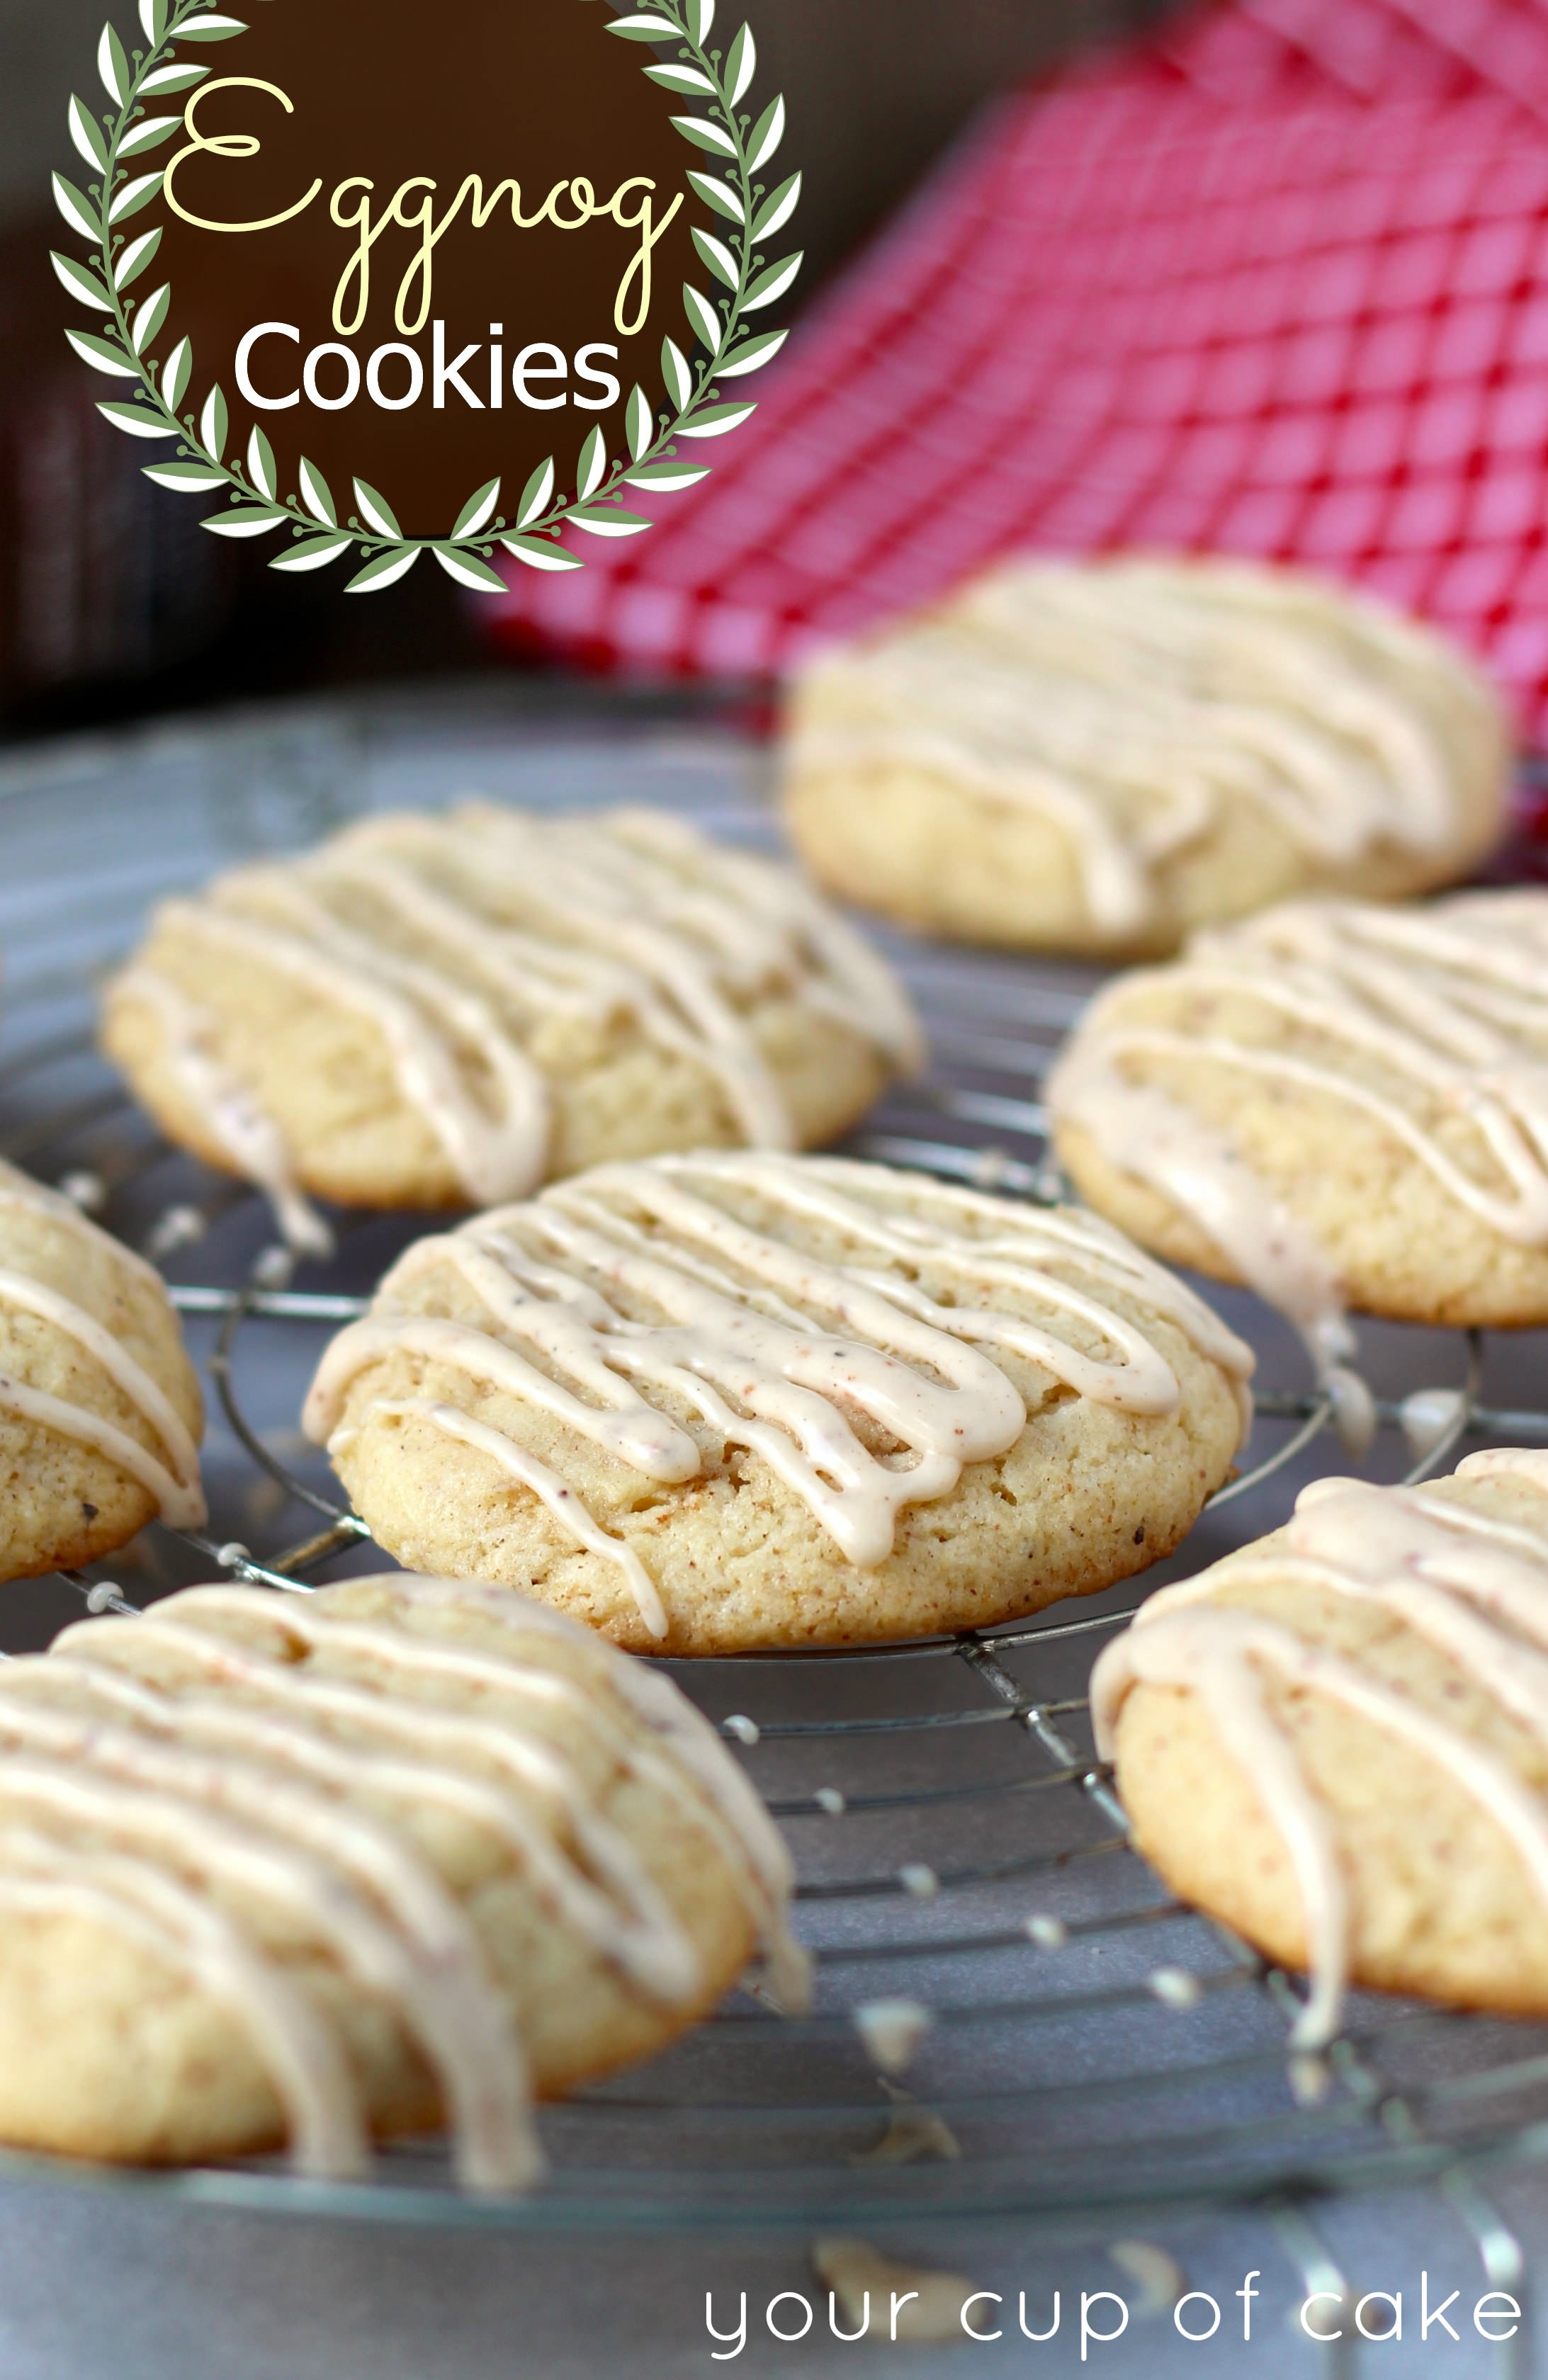 Eggnog Cookies (Scratch and Cake Mix recipes)